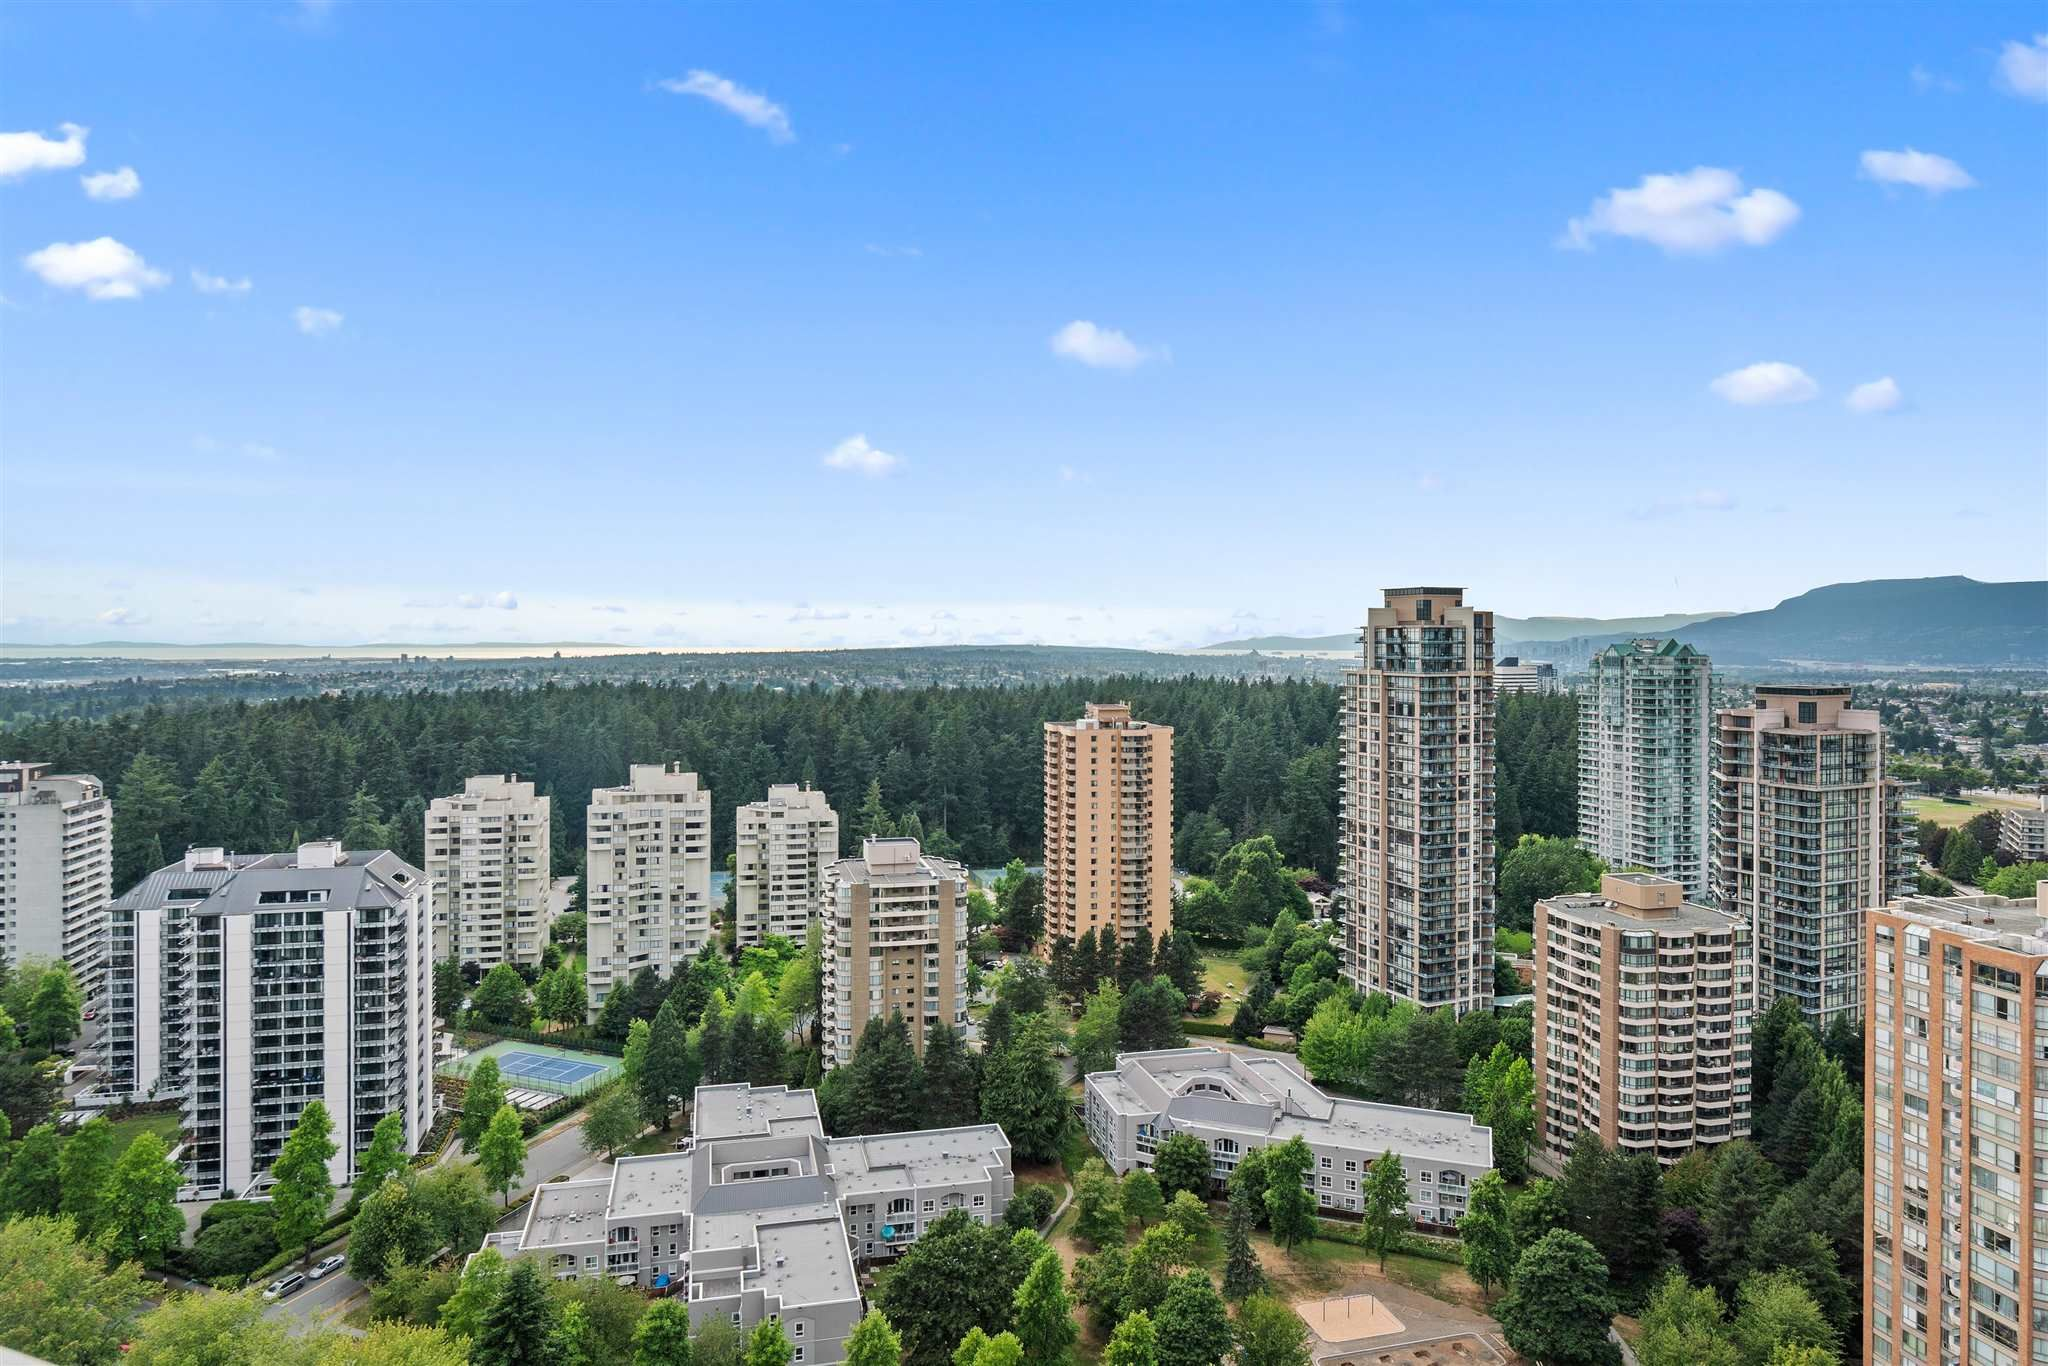 Main Photo: 2602 6288 CASSIE Avenue in Burnaby: Metrotown Condo for sale (Burnaby South)  : MLS®# R2602118